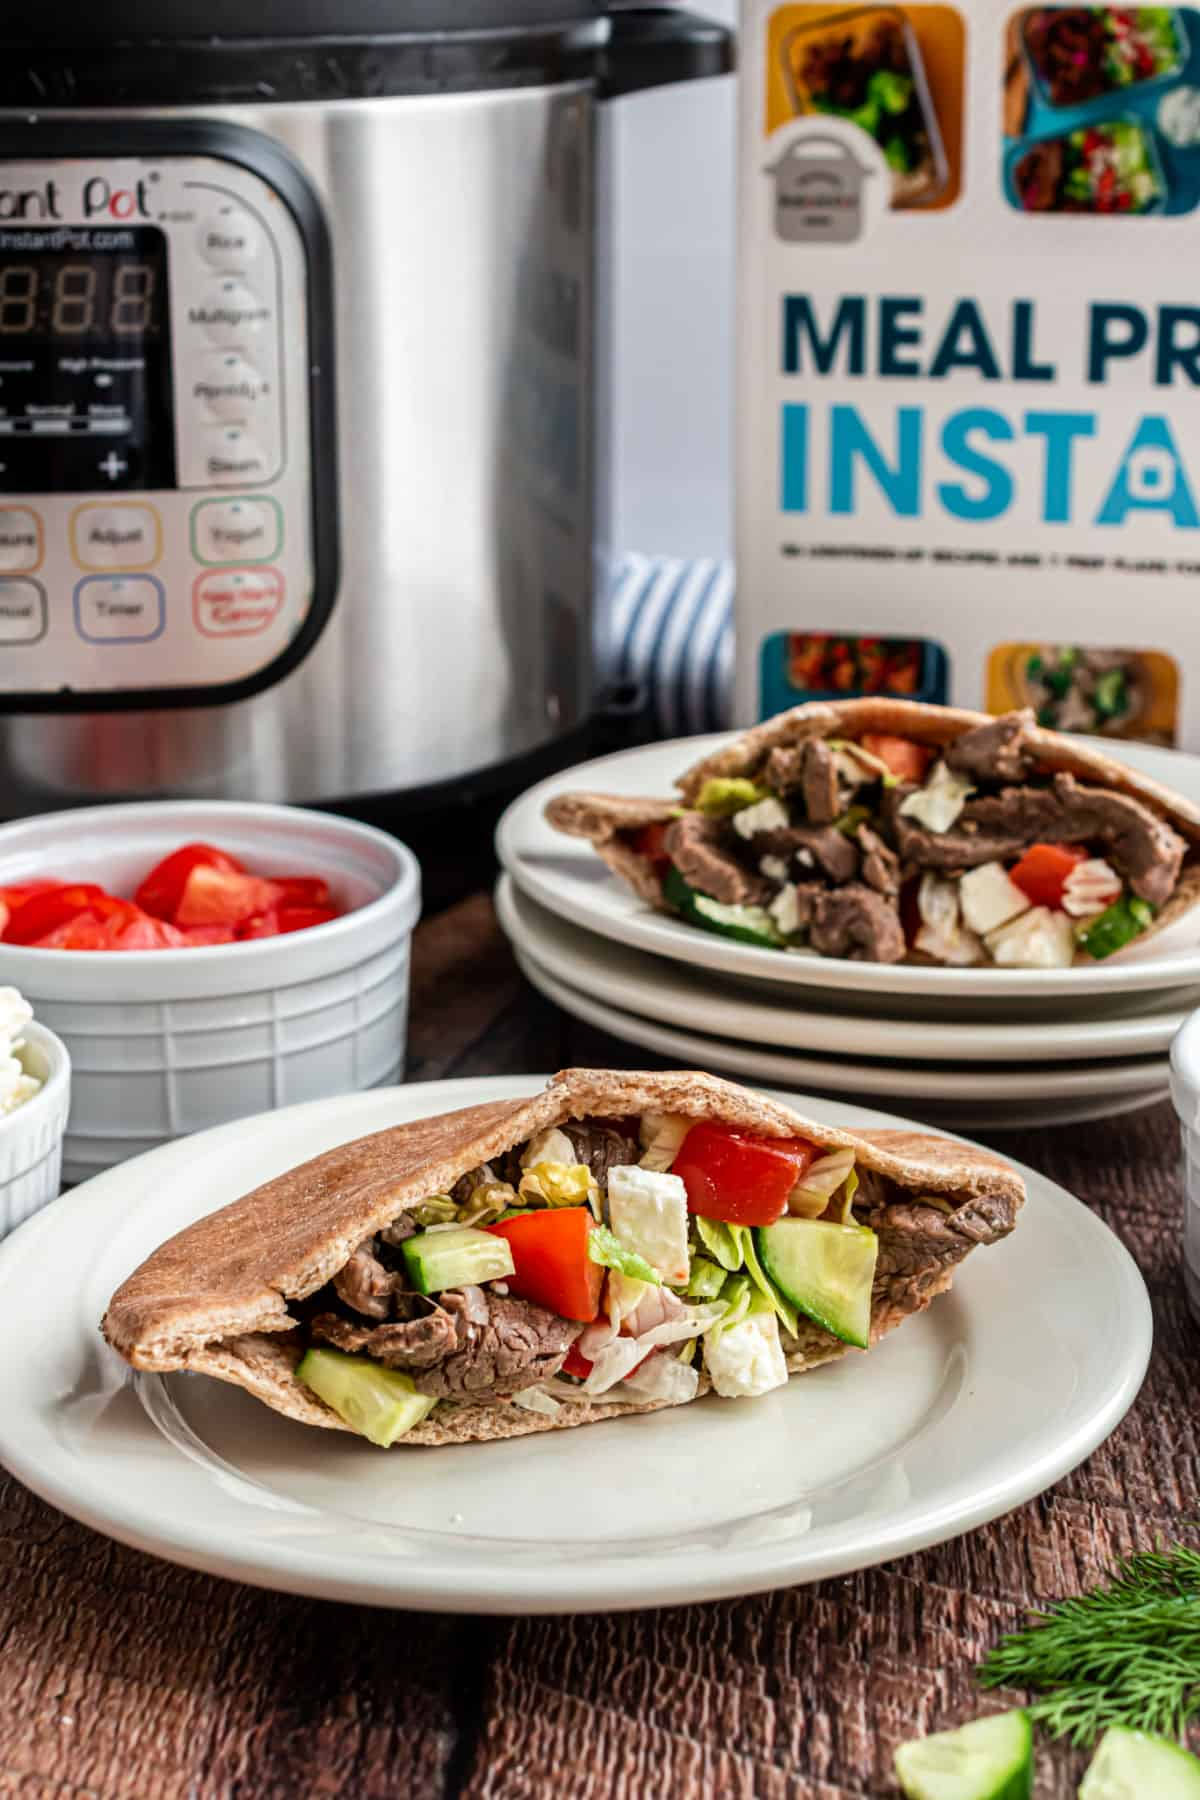 Beef gyros in a pita with vegetables and feta cheese.